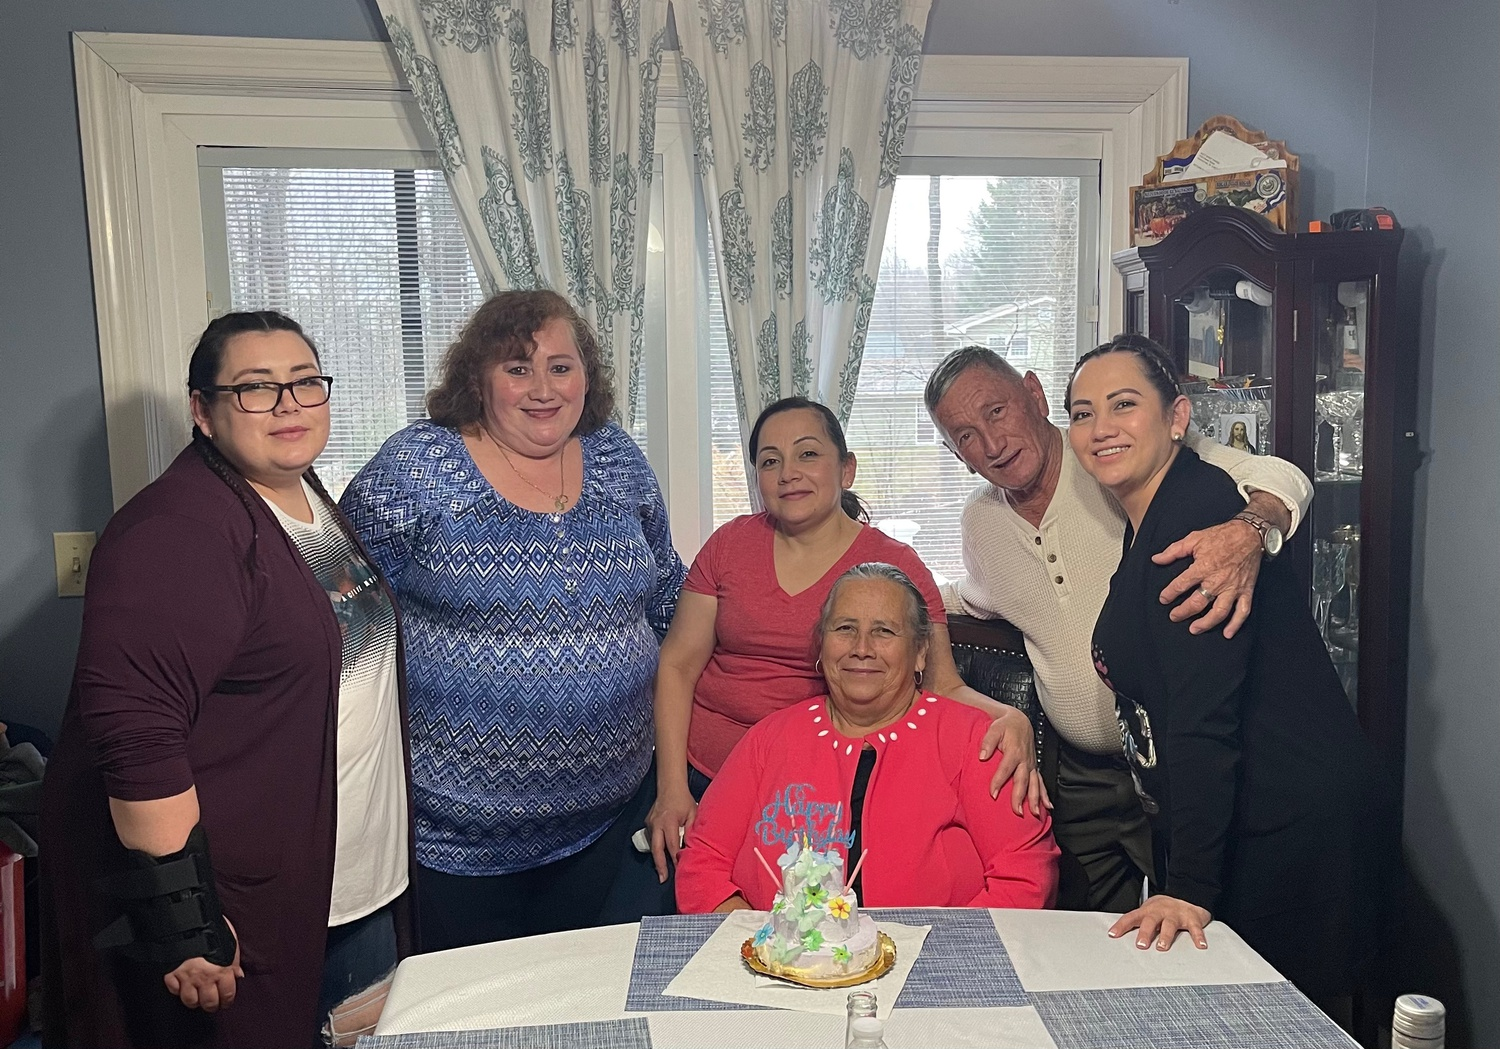 Martinez and her sisters surprised her mother with a birthday lunch when Martinez's parents flew over from El Salvador to Rhode Island.